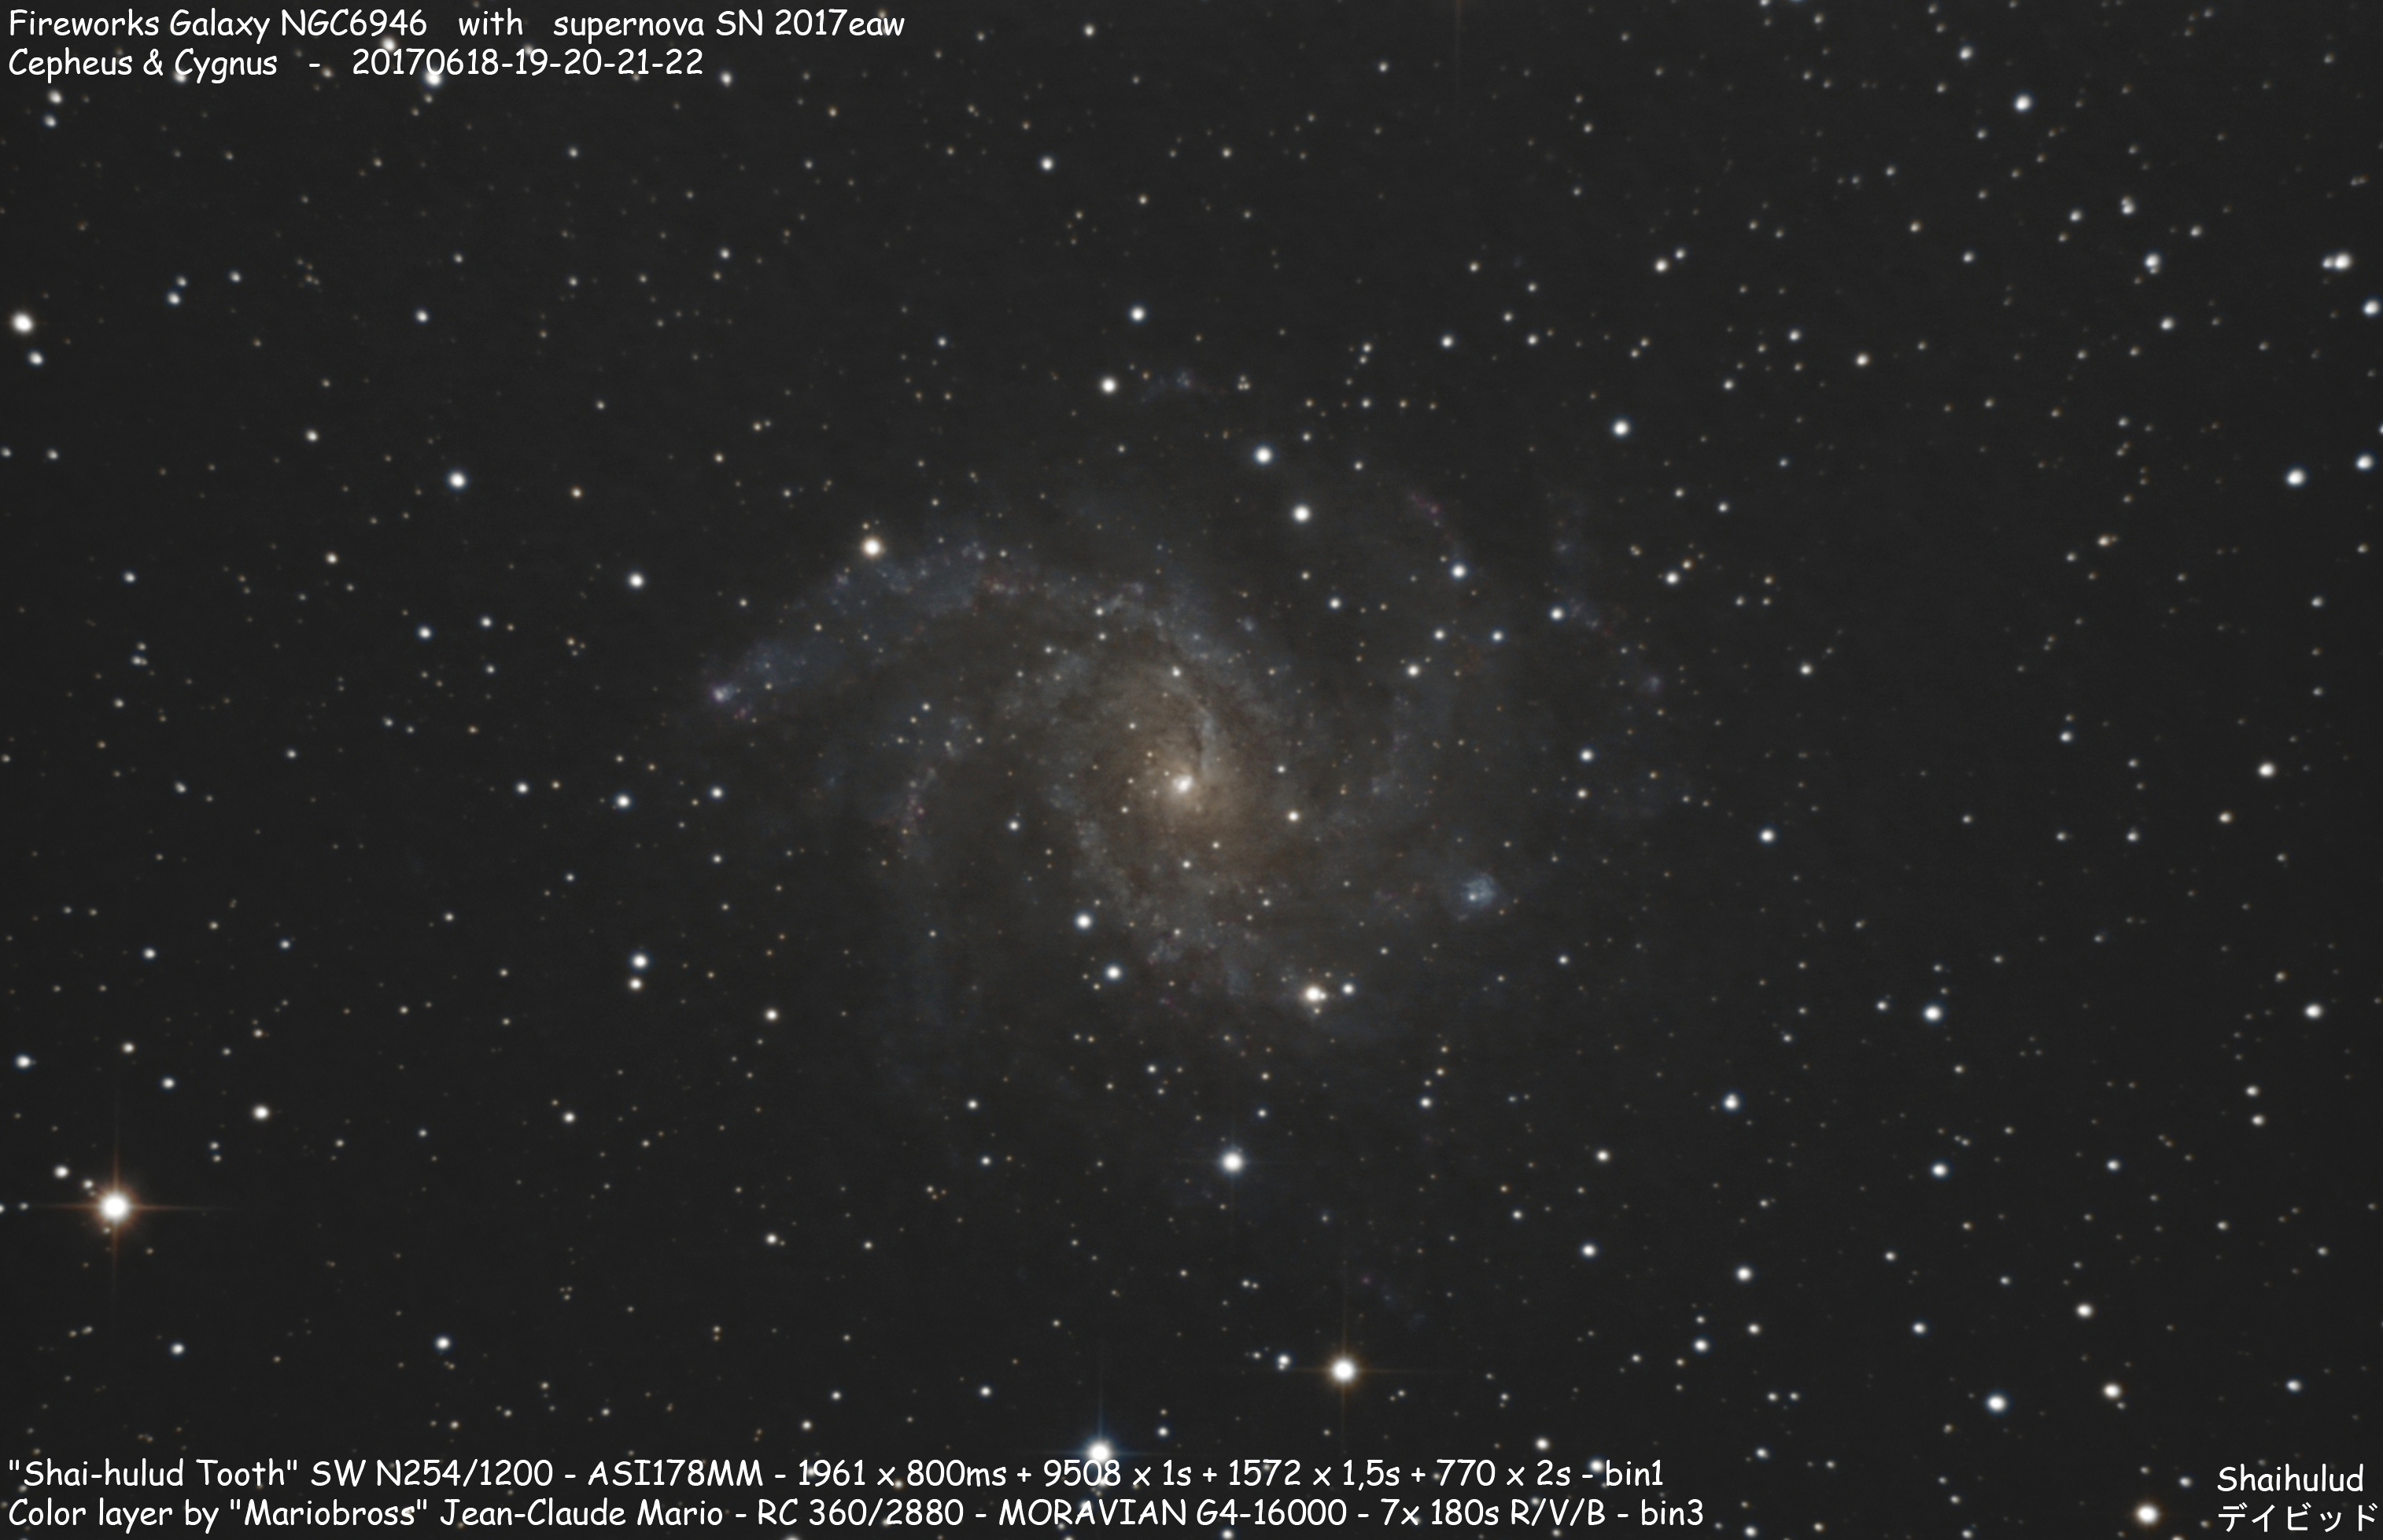 Fireworks Galaxy NGC6946 with supernova SN 2017eaw (Shot from the city center of Reims)